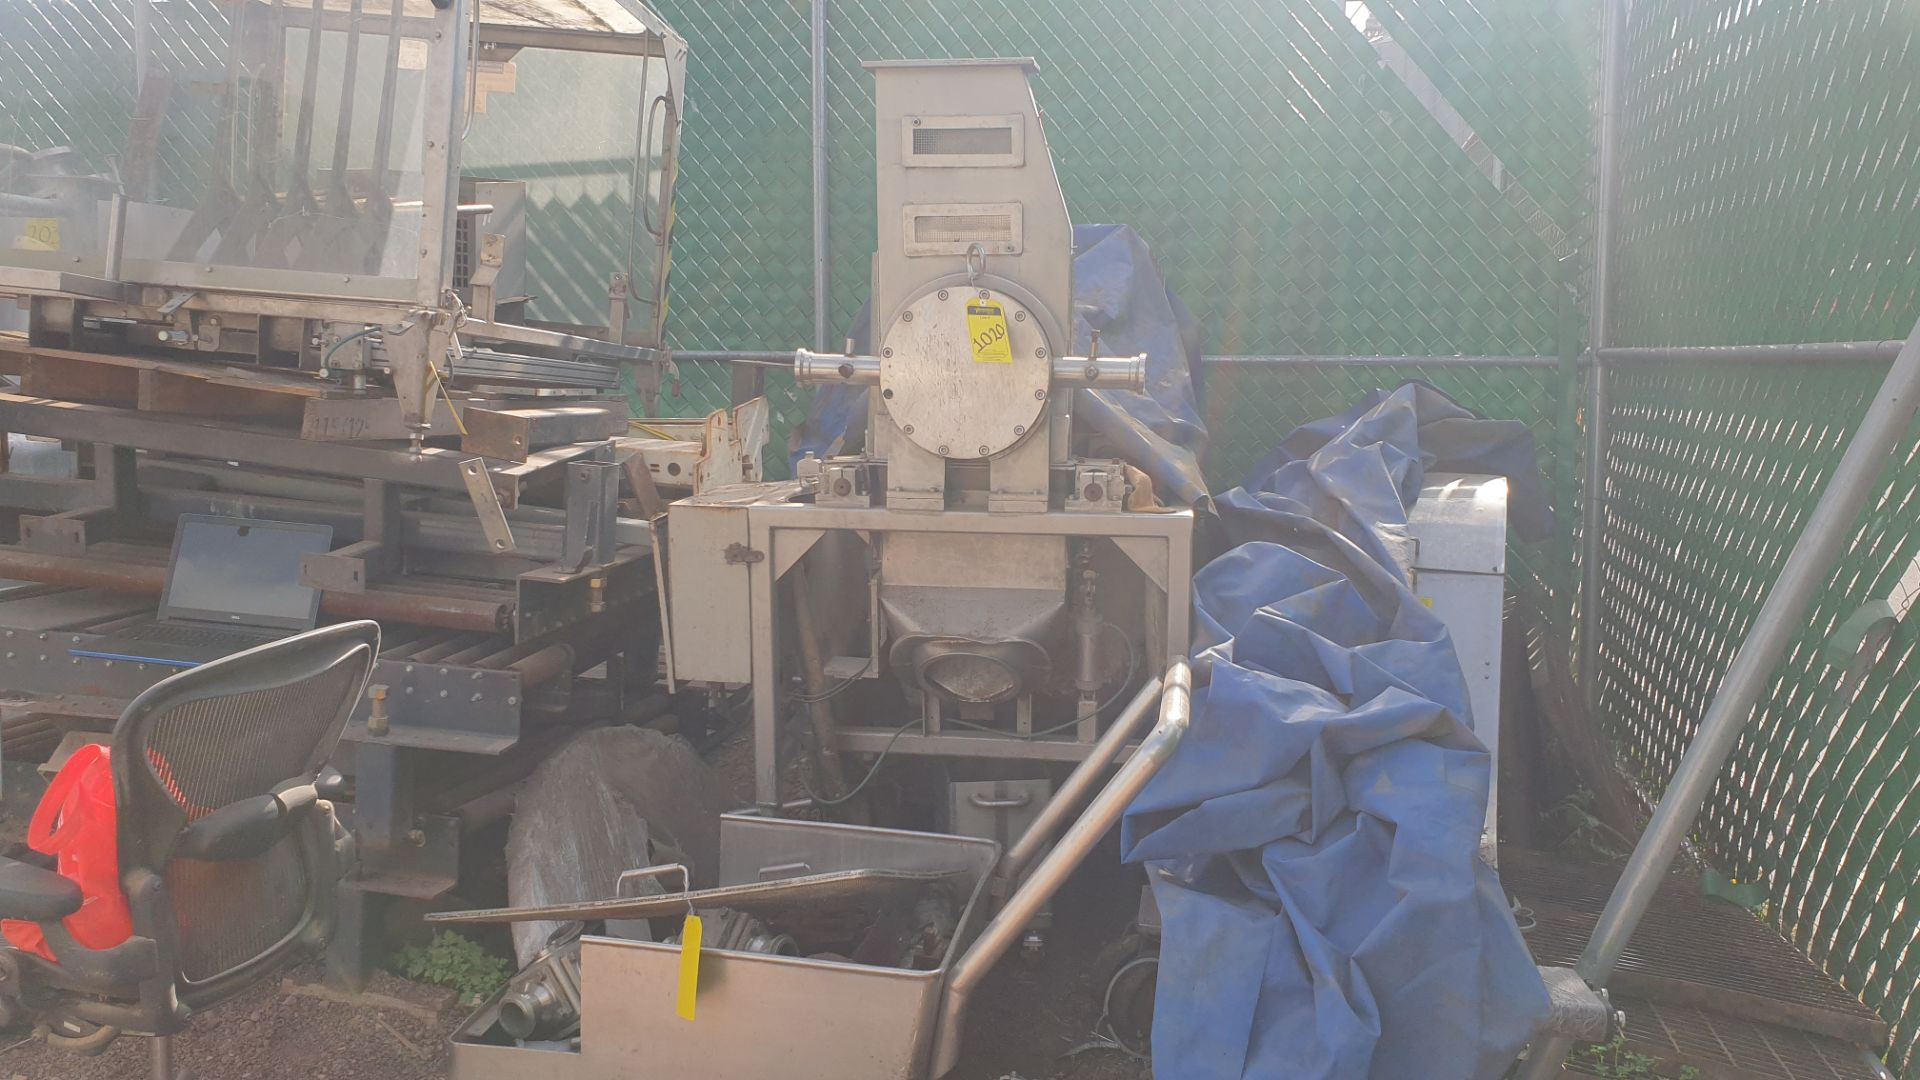 Side & Site system includes conveyor car with connection valves and figure cutters all in stainless - Image 2 of 7